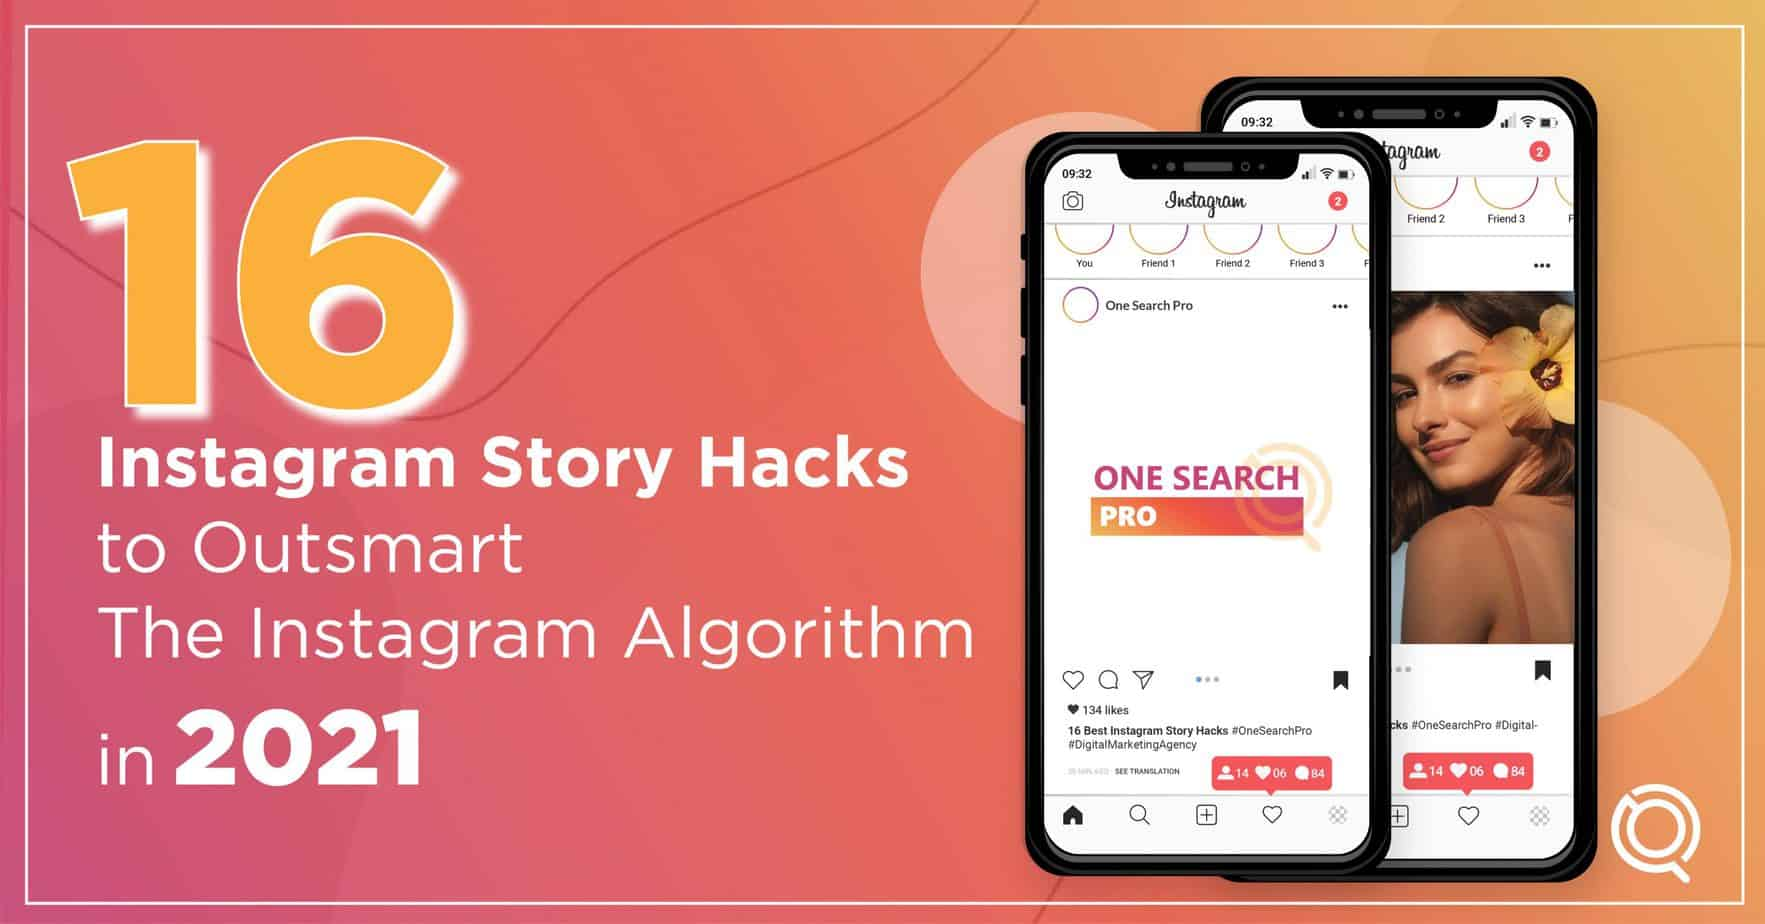 16 Instagram Story Hacks to Outsmart The Instagram Algorithm in 2021 - One Search Pro Digital Marketing Agency